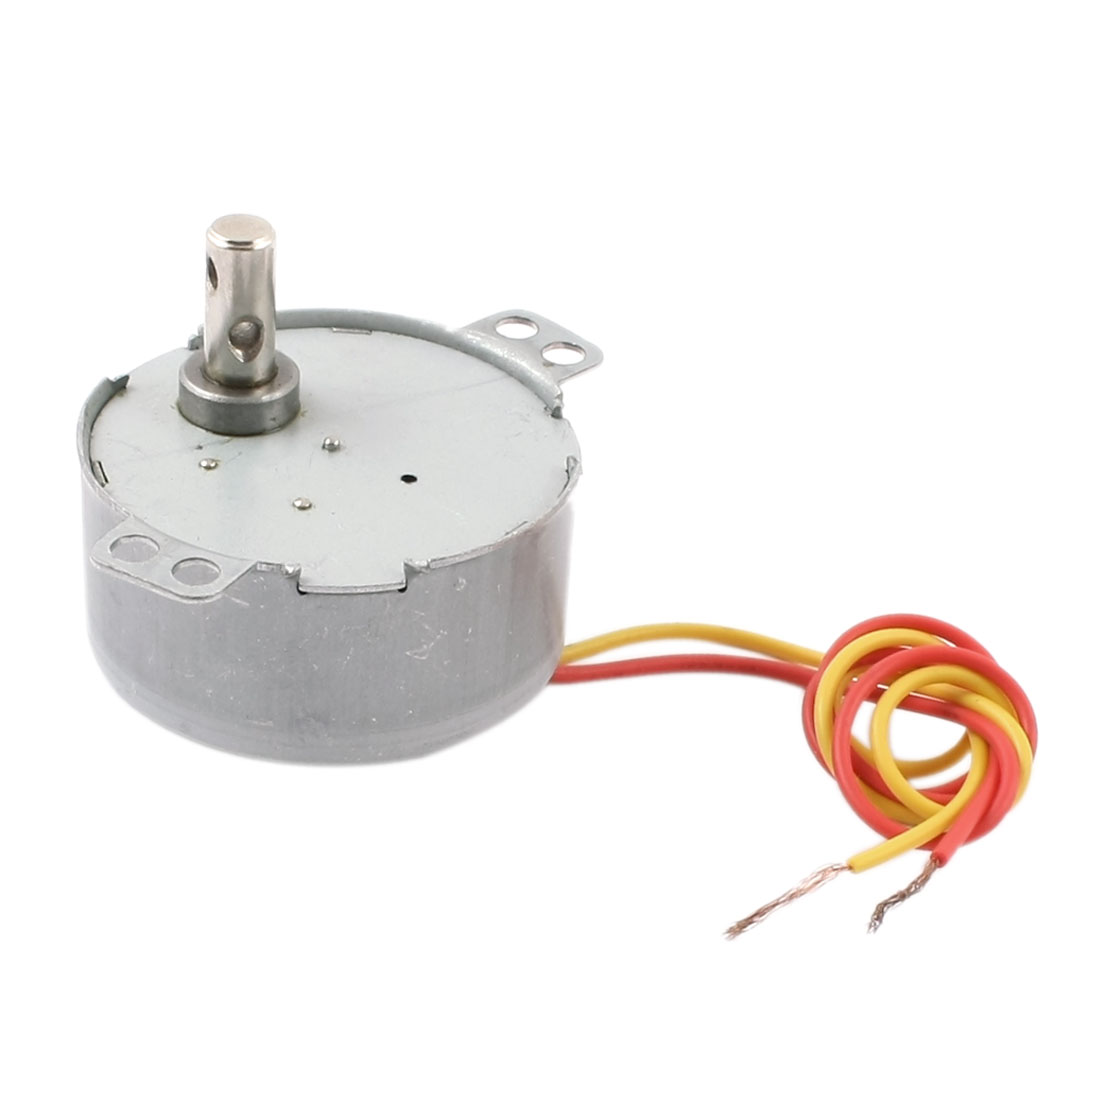 Spare Parts 5RPM Output Speed CW/CCW Synchronous Motor AC 220/240V